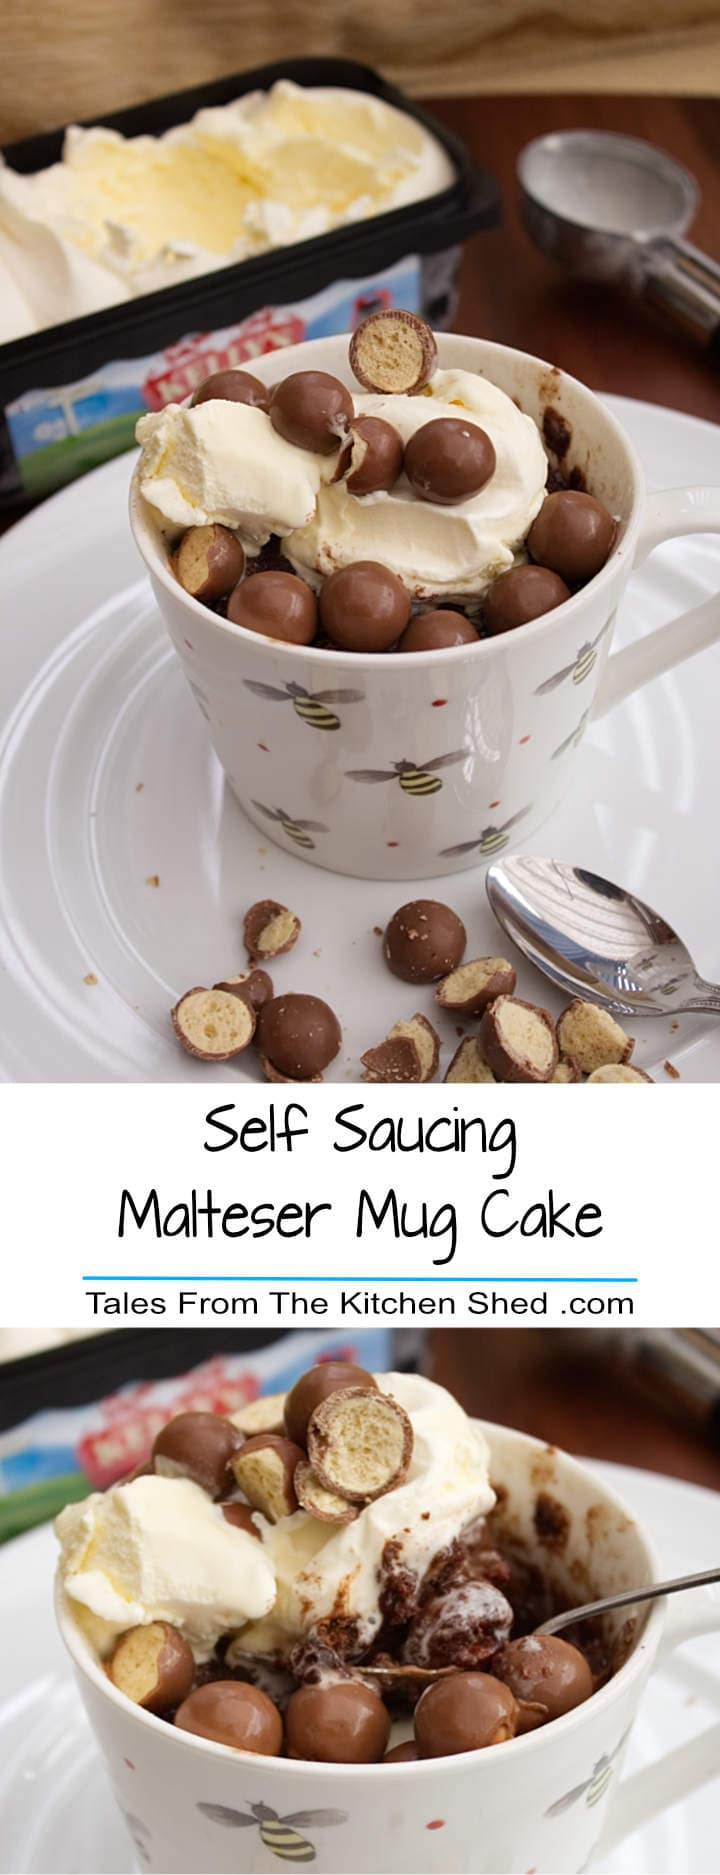 Self Saucing Malteser Mug Cake : A malty chocolate sponge with hidden maltesers & a rich hot chocolate sauce that can satisfy your sweet tooth in just 90 seconds. This is the best individual self saucing pudding recipe EVER.